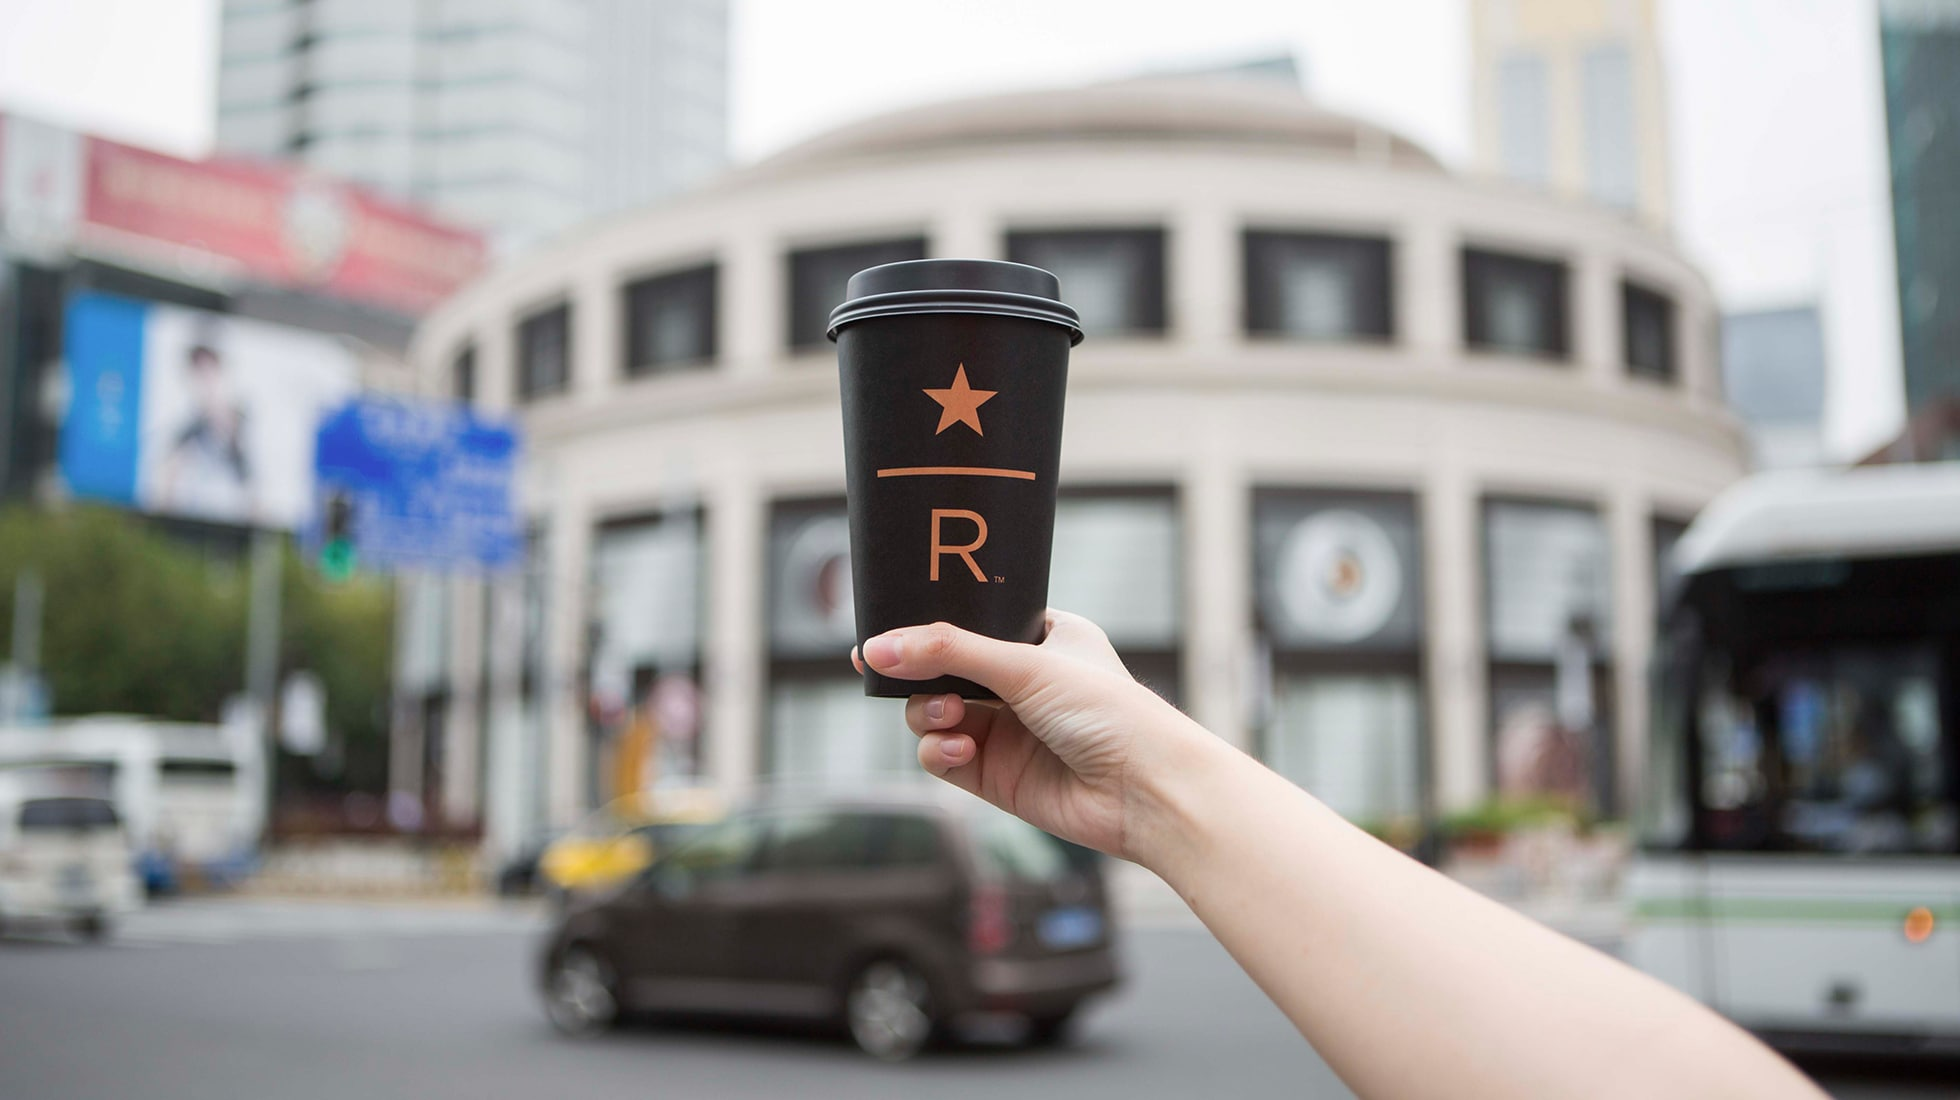 Hand holding black Starbucks Reserve paper cup, in front of a building